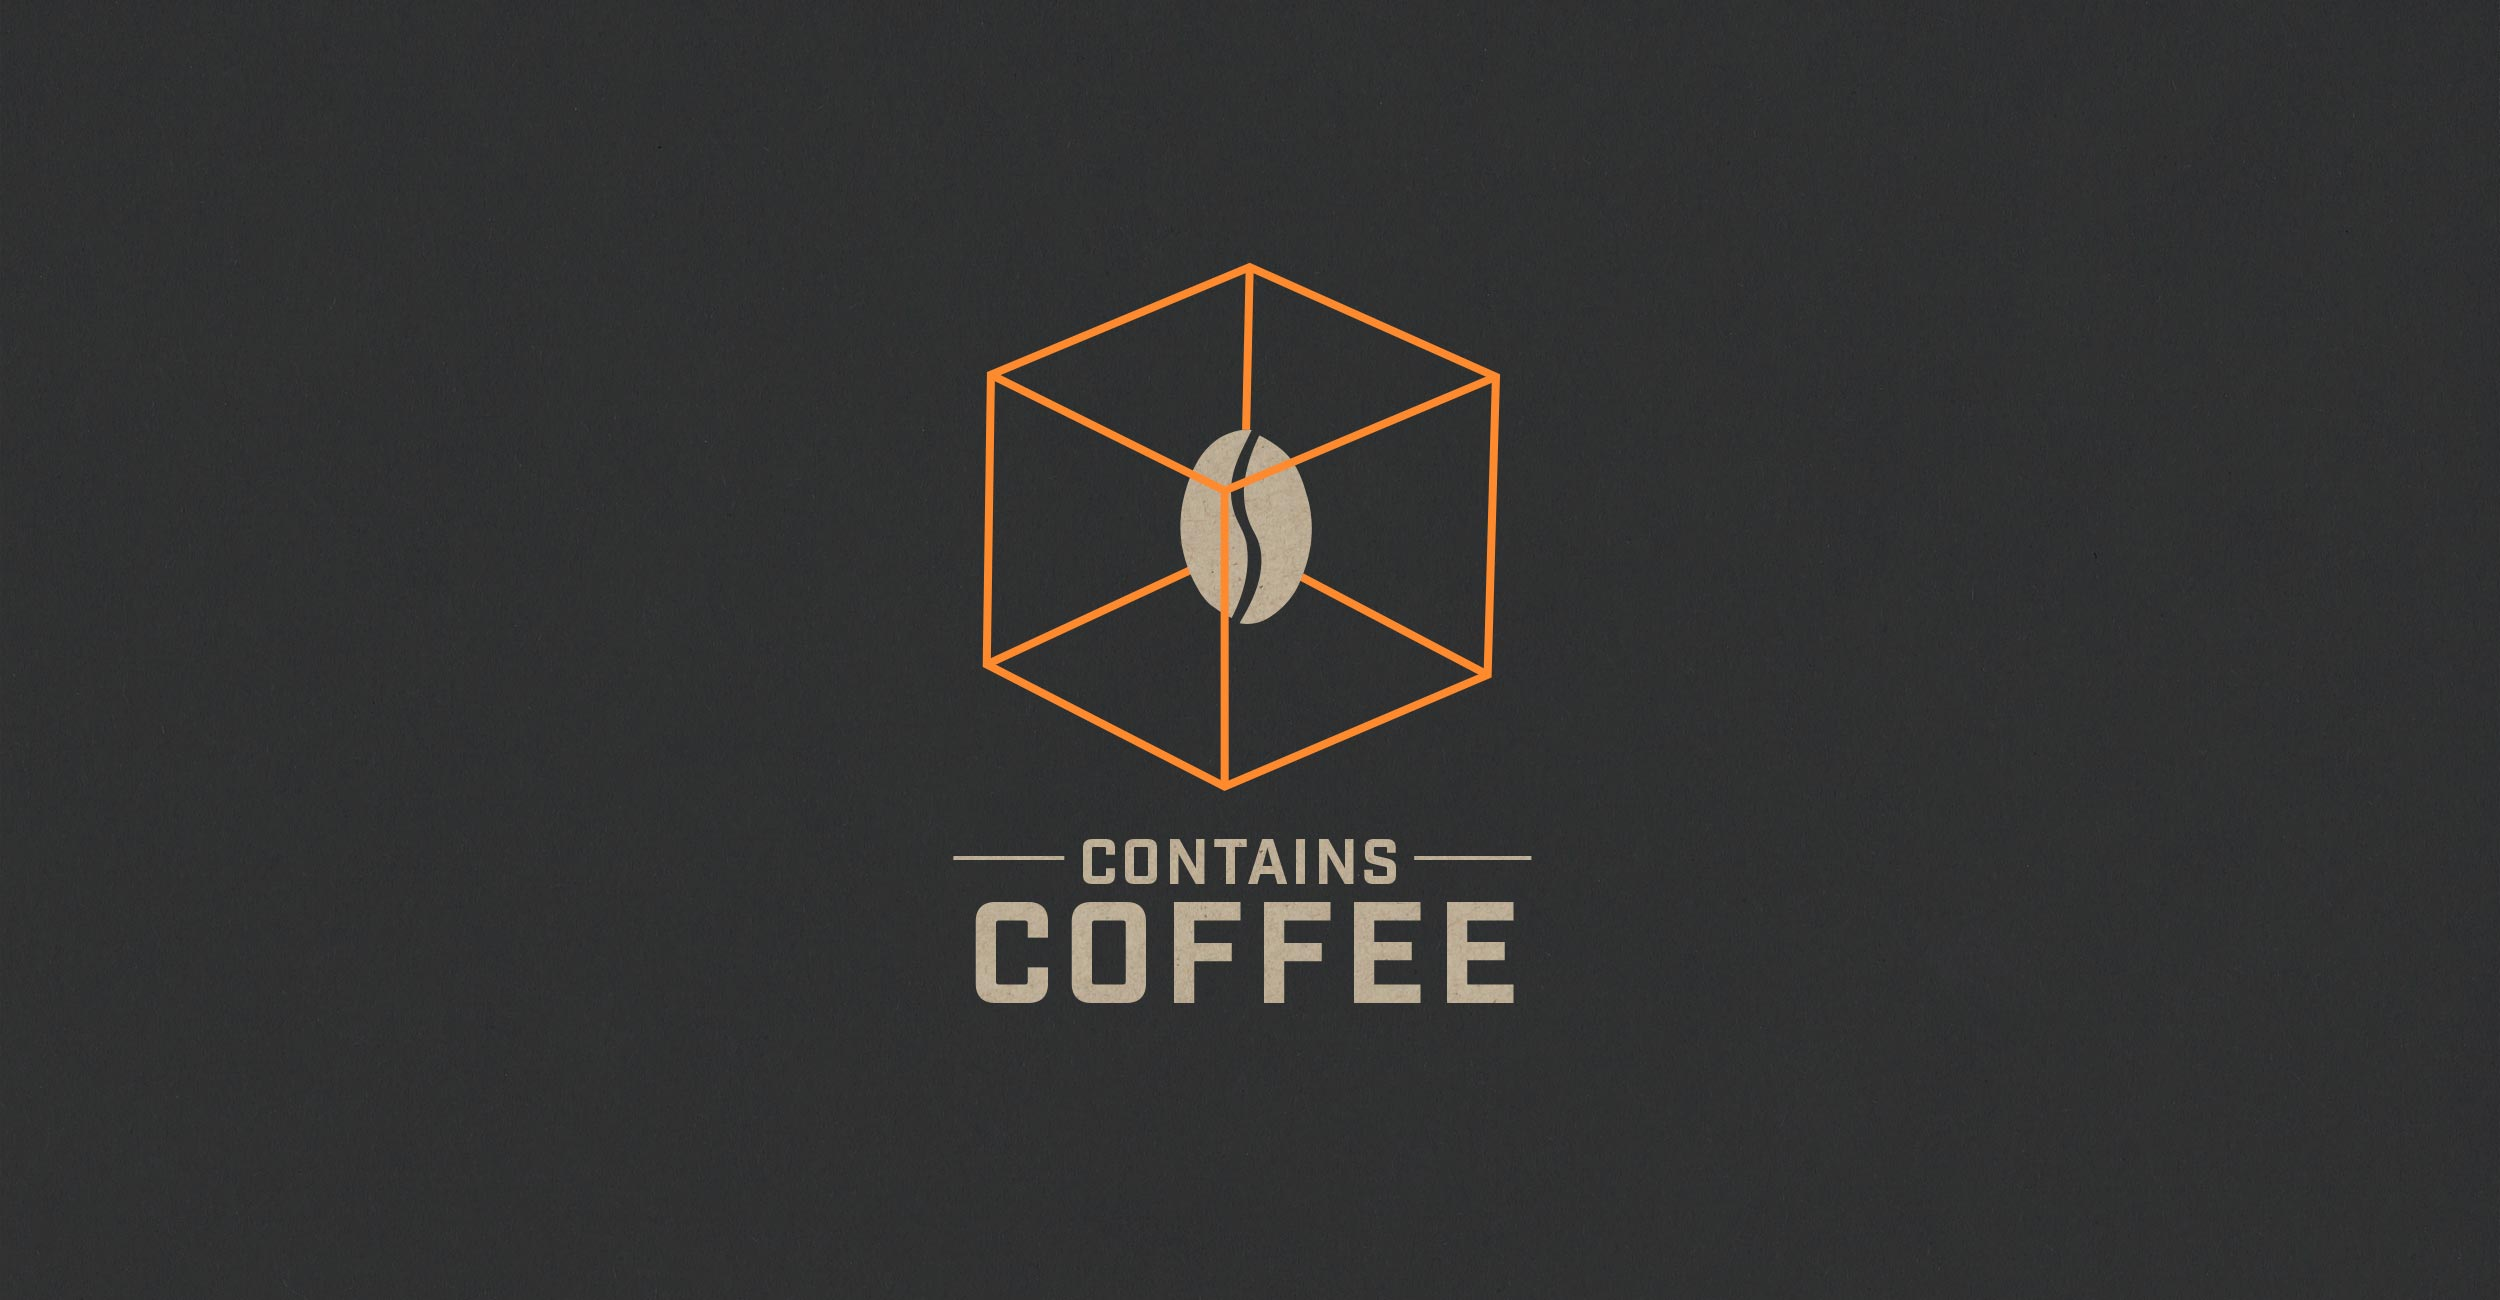 Logo Contains Coffee